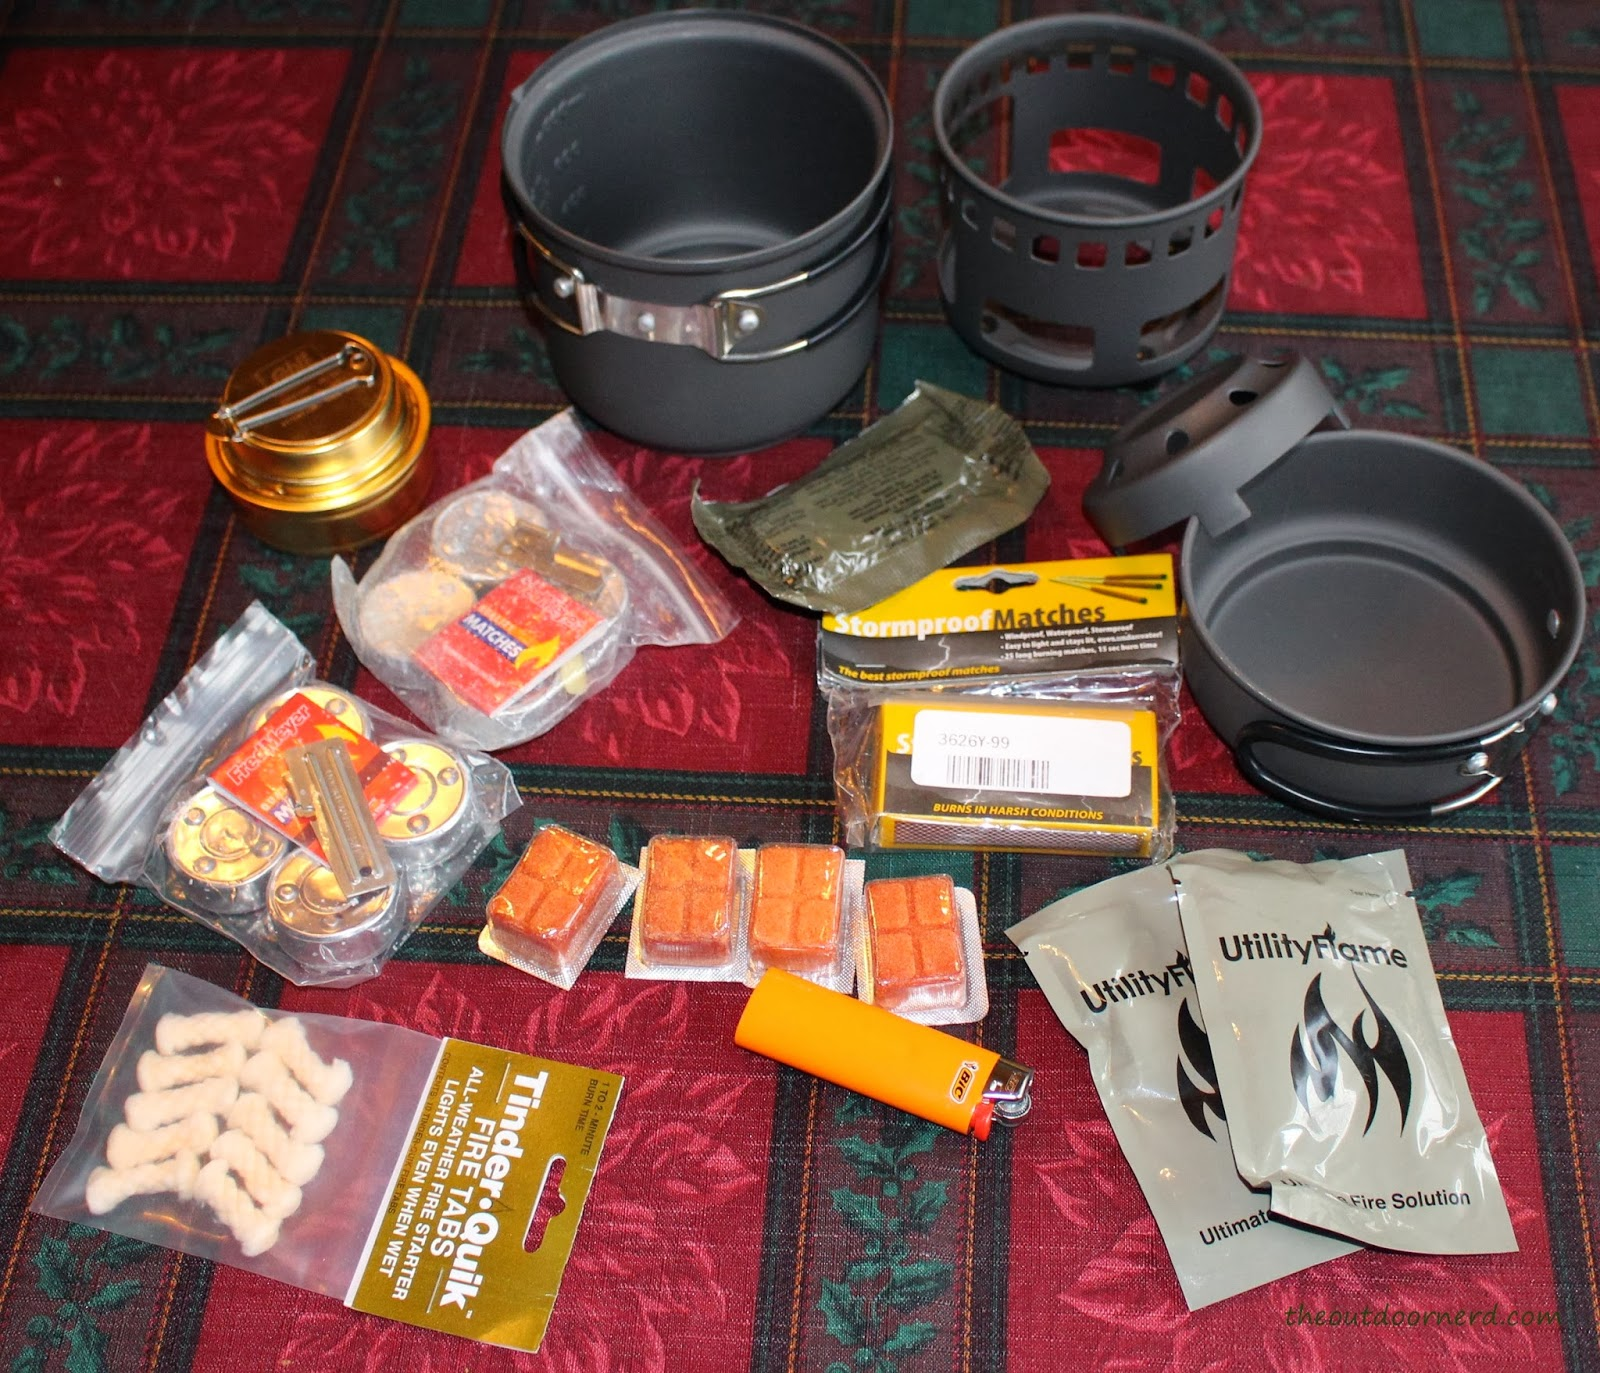 Esbit 5-Piece Trekking Cook Set - Shown with extra fuel, matches, lighter, can openers and tinder